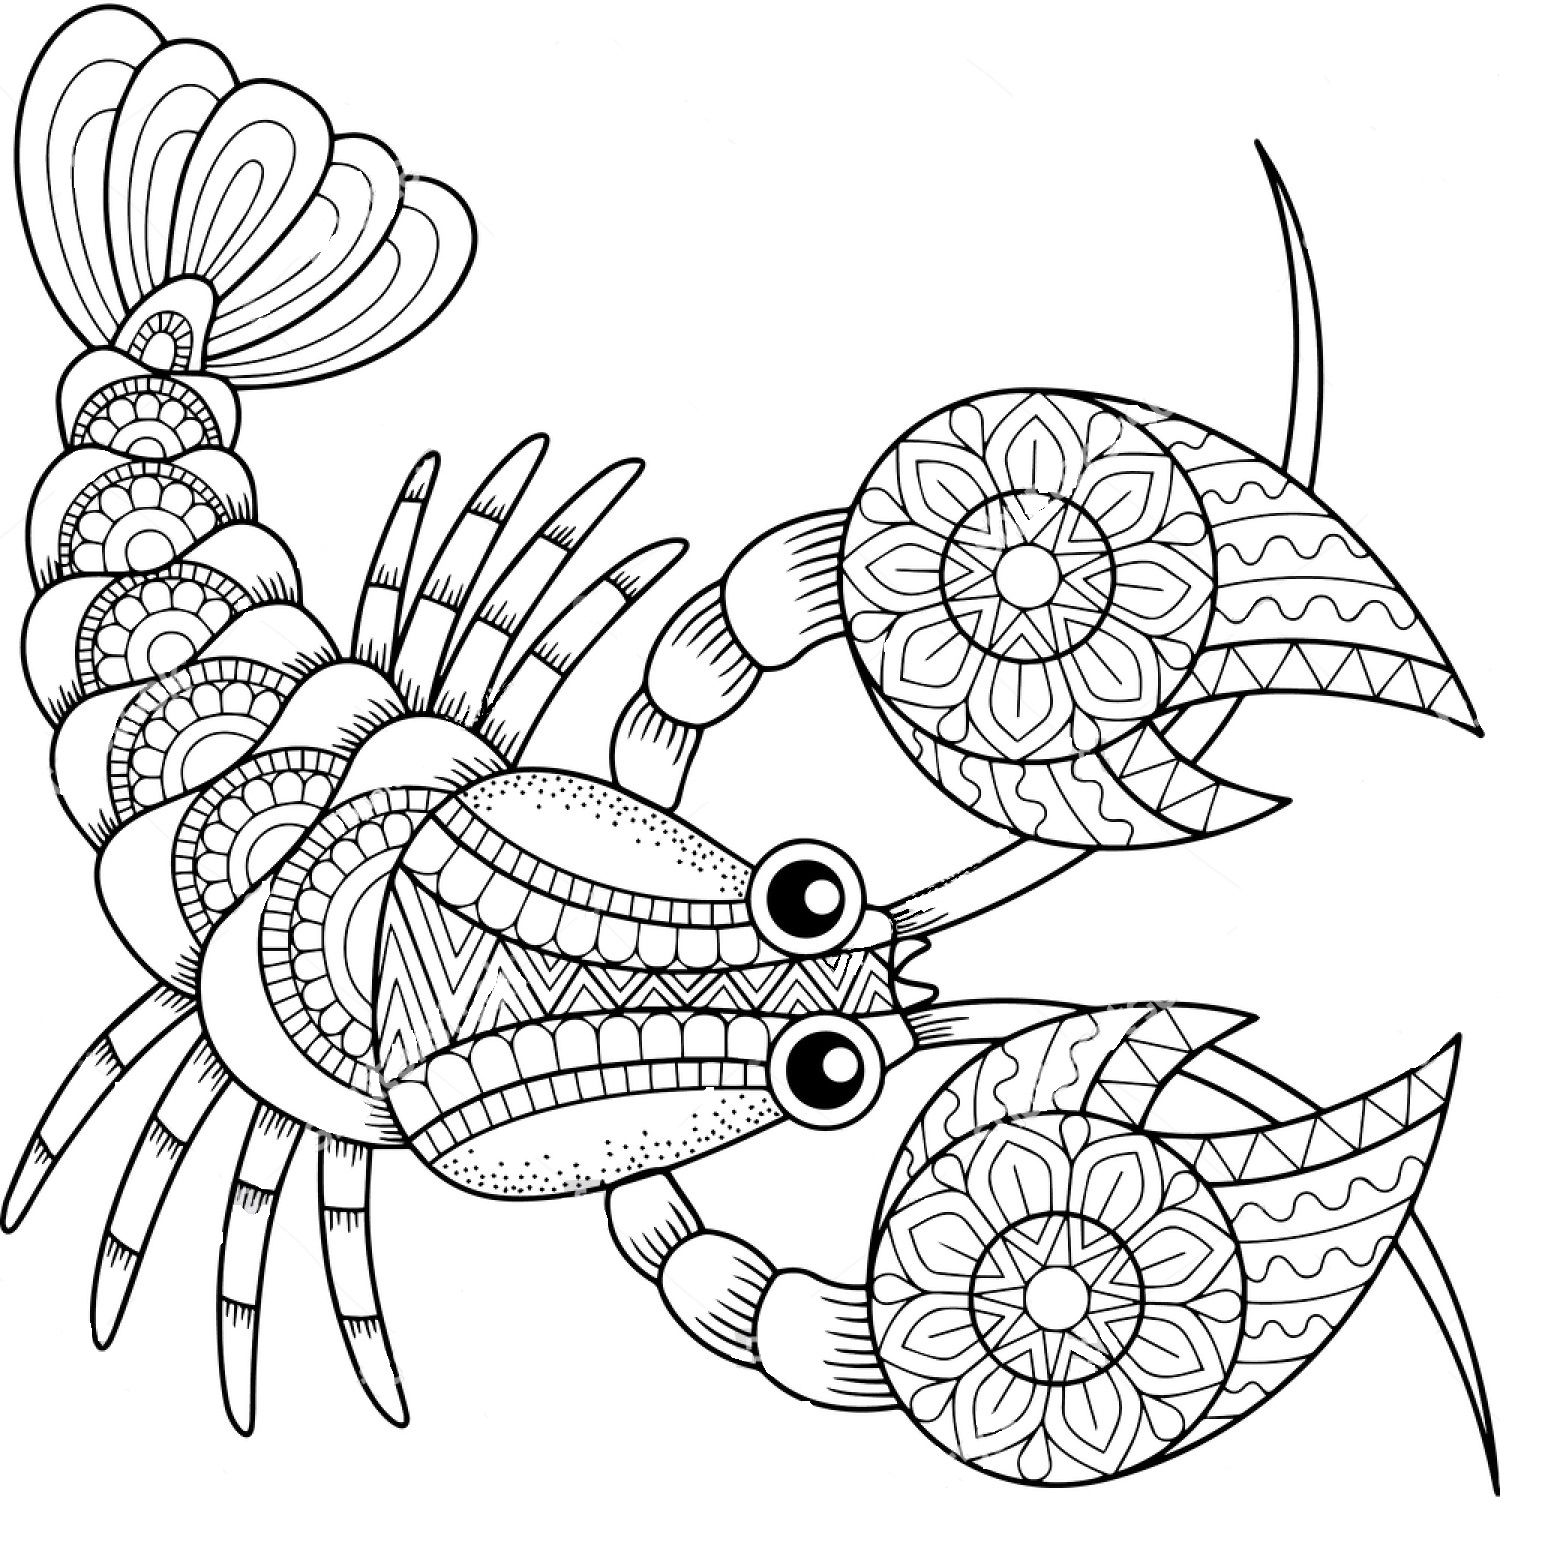 Lobster Designs Coloring Books Coloring Books Animal Coloring Pages